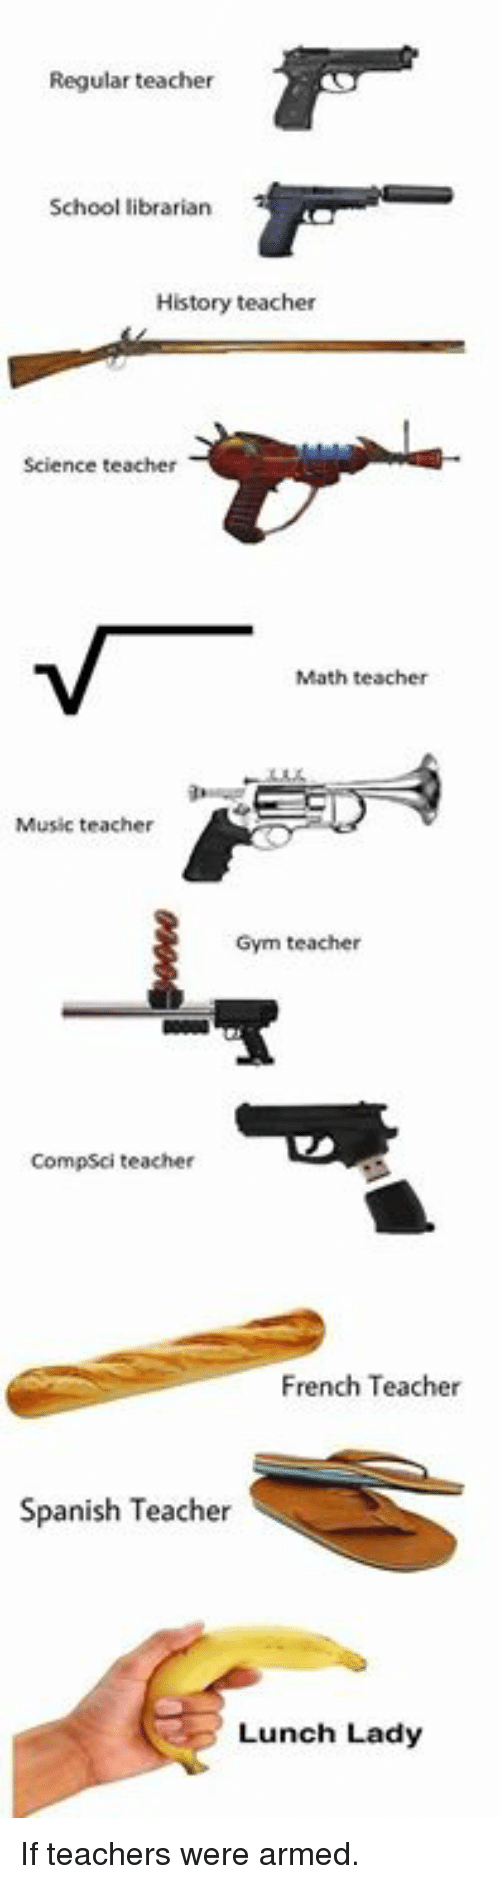 Dank, Gym, and Music: Regular teacher  School librarian  History teacher  Science teacher  Math teacher  Music teacher  Gym teacher  CompSci teacher  French Teacher  Spanish Teacher  Lunch Lady If teachers were armed.